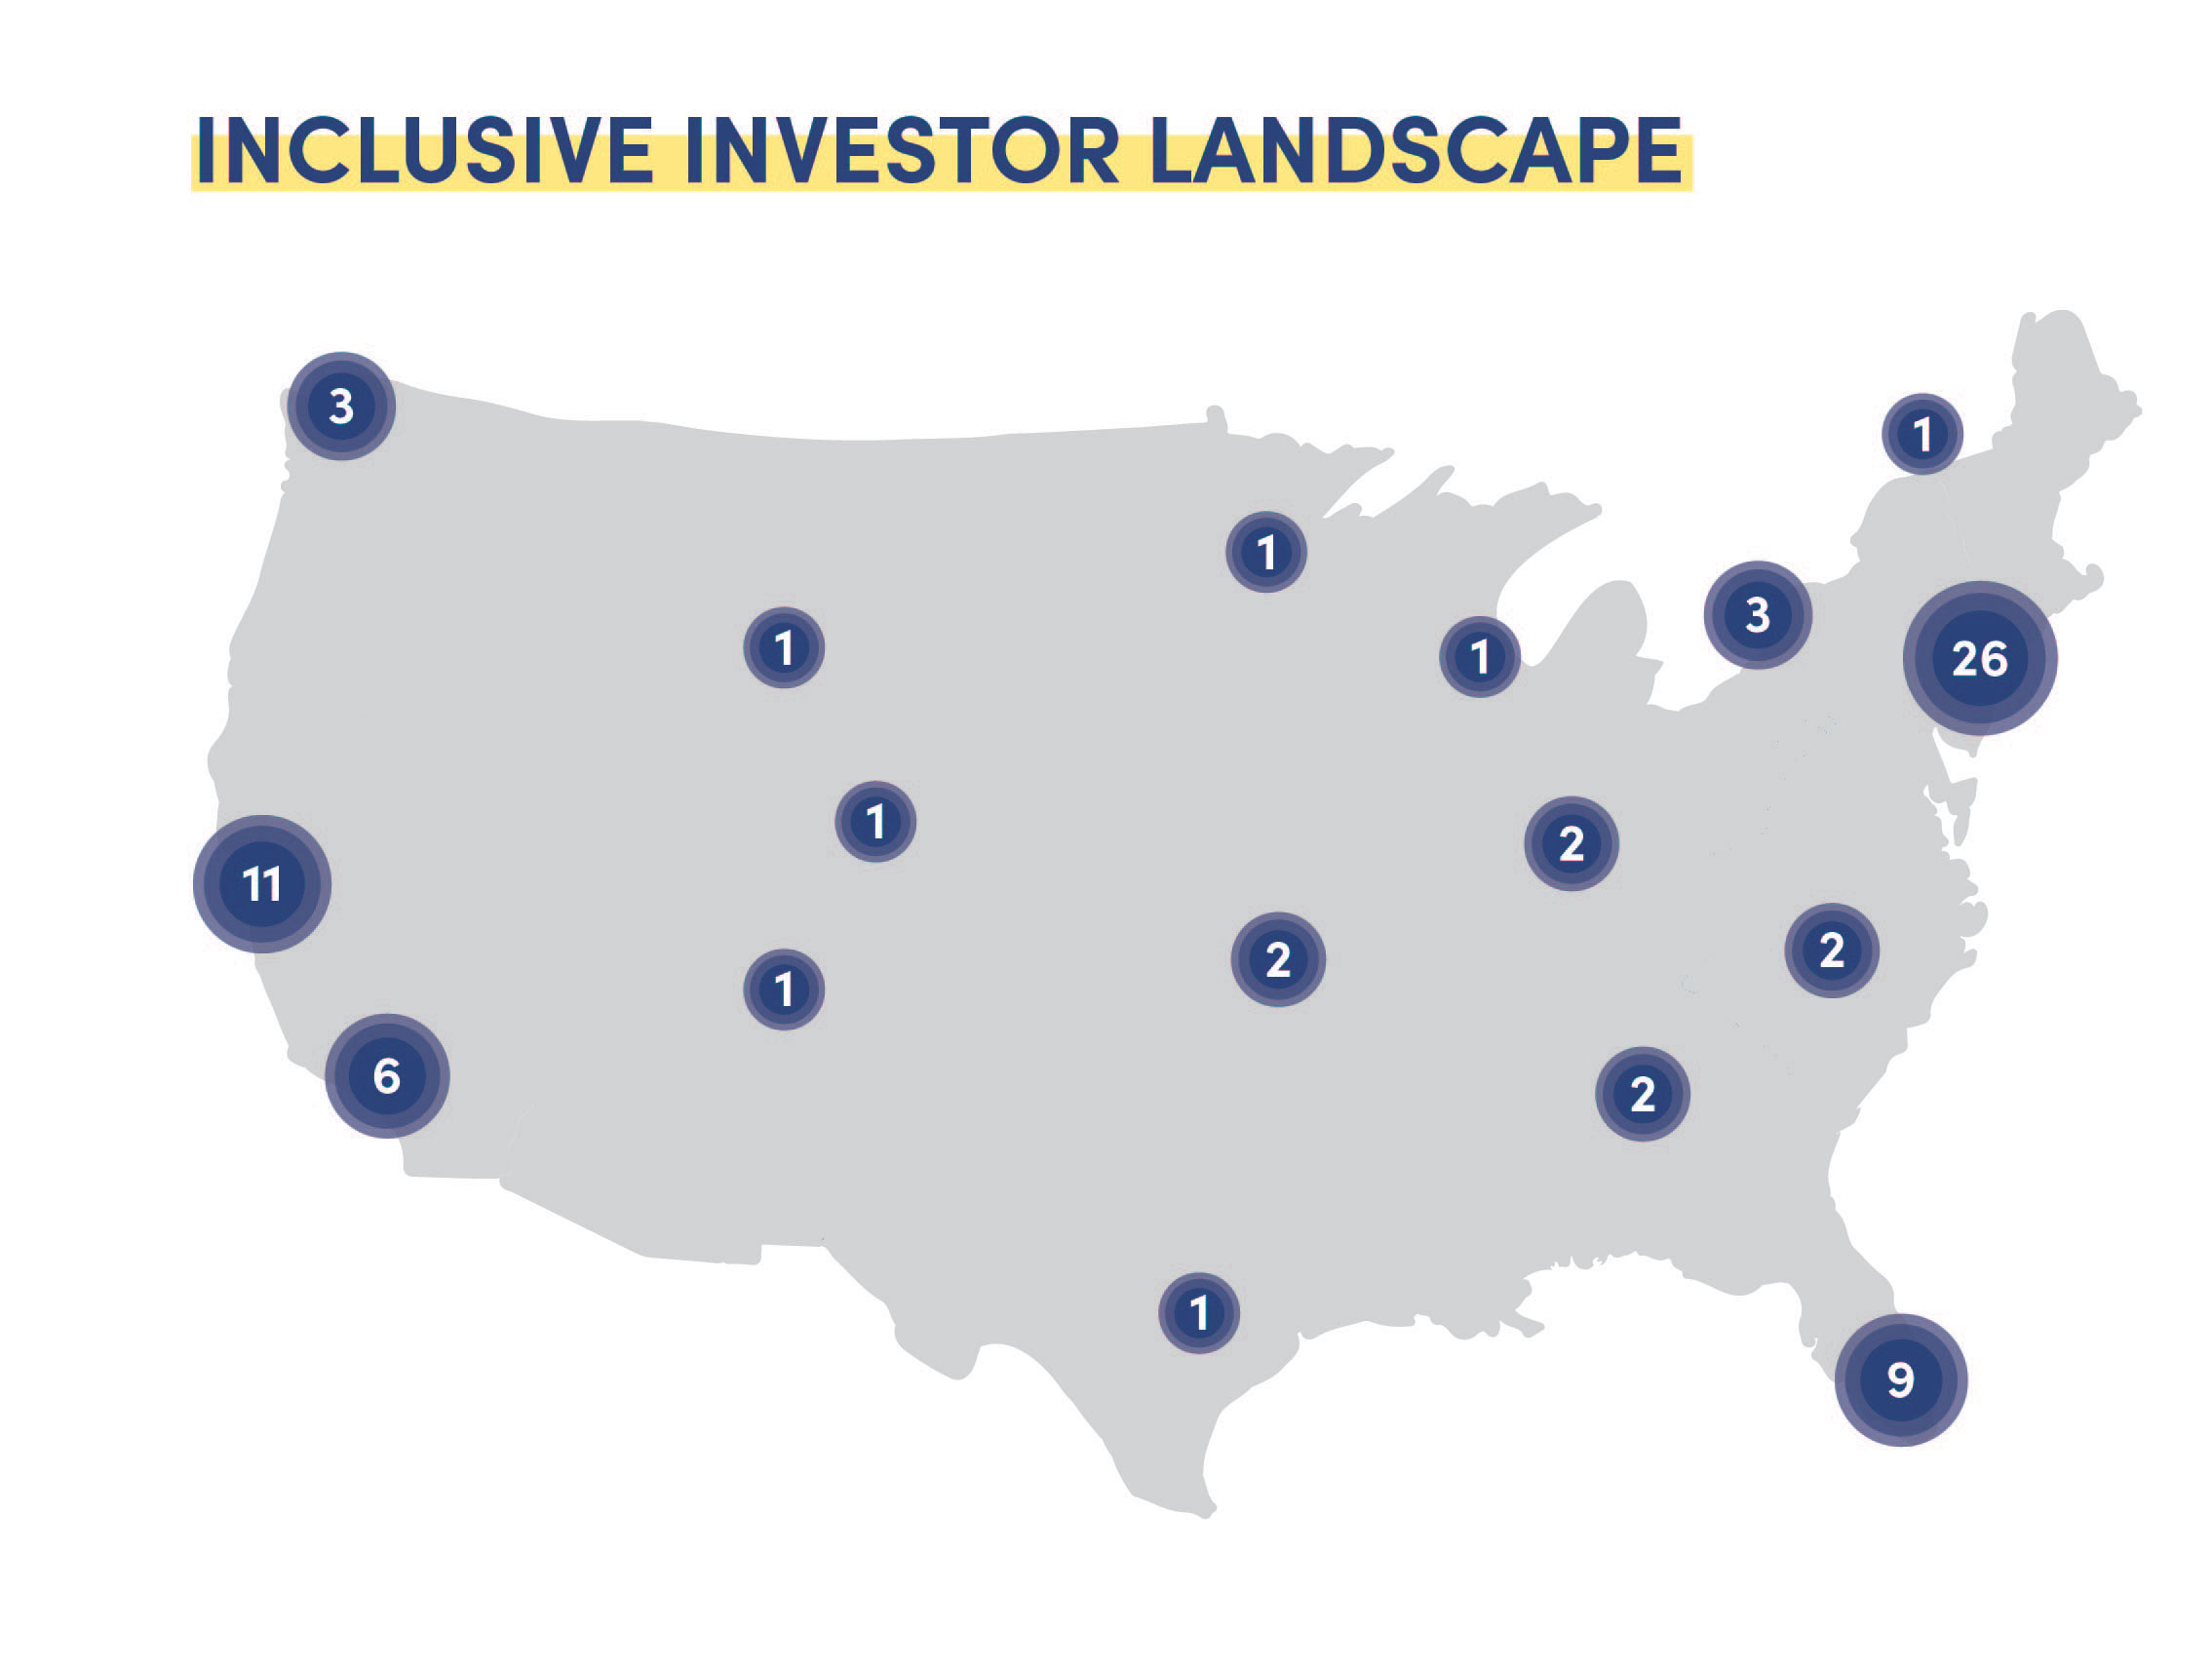 Inclusive Investor Landscape Map